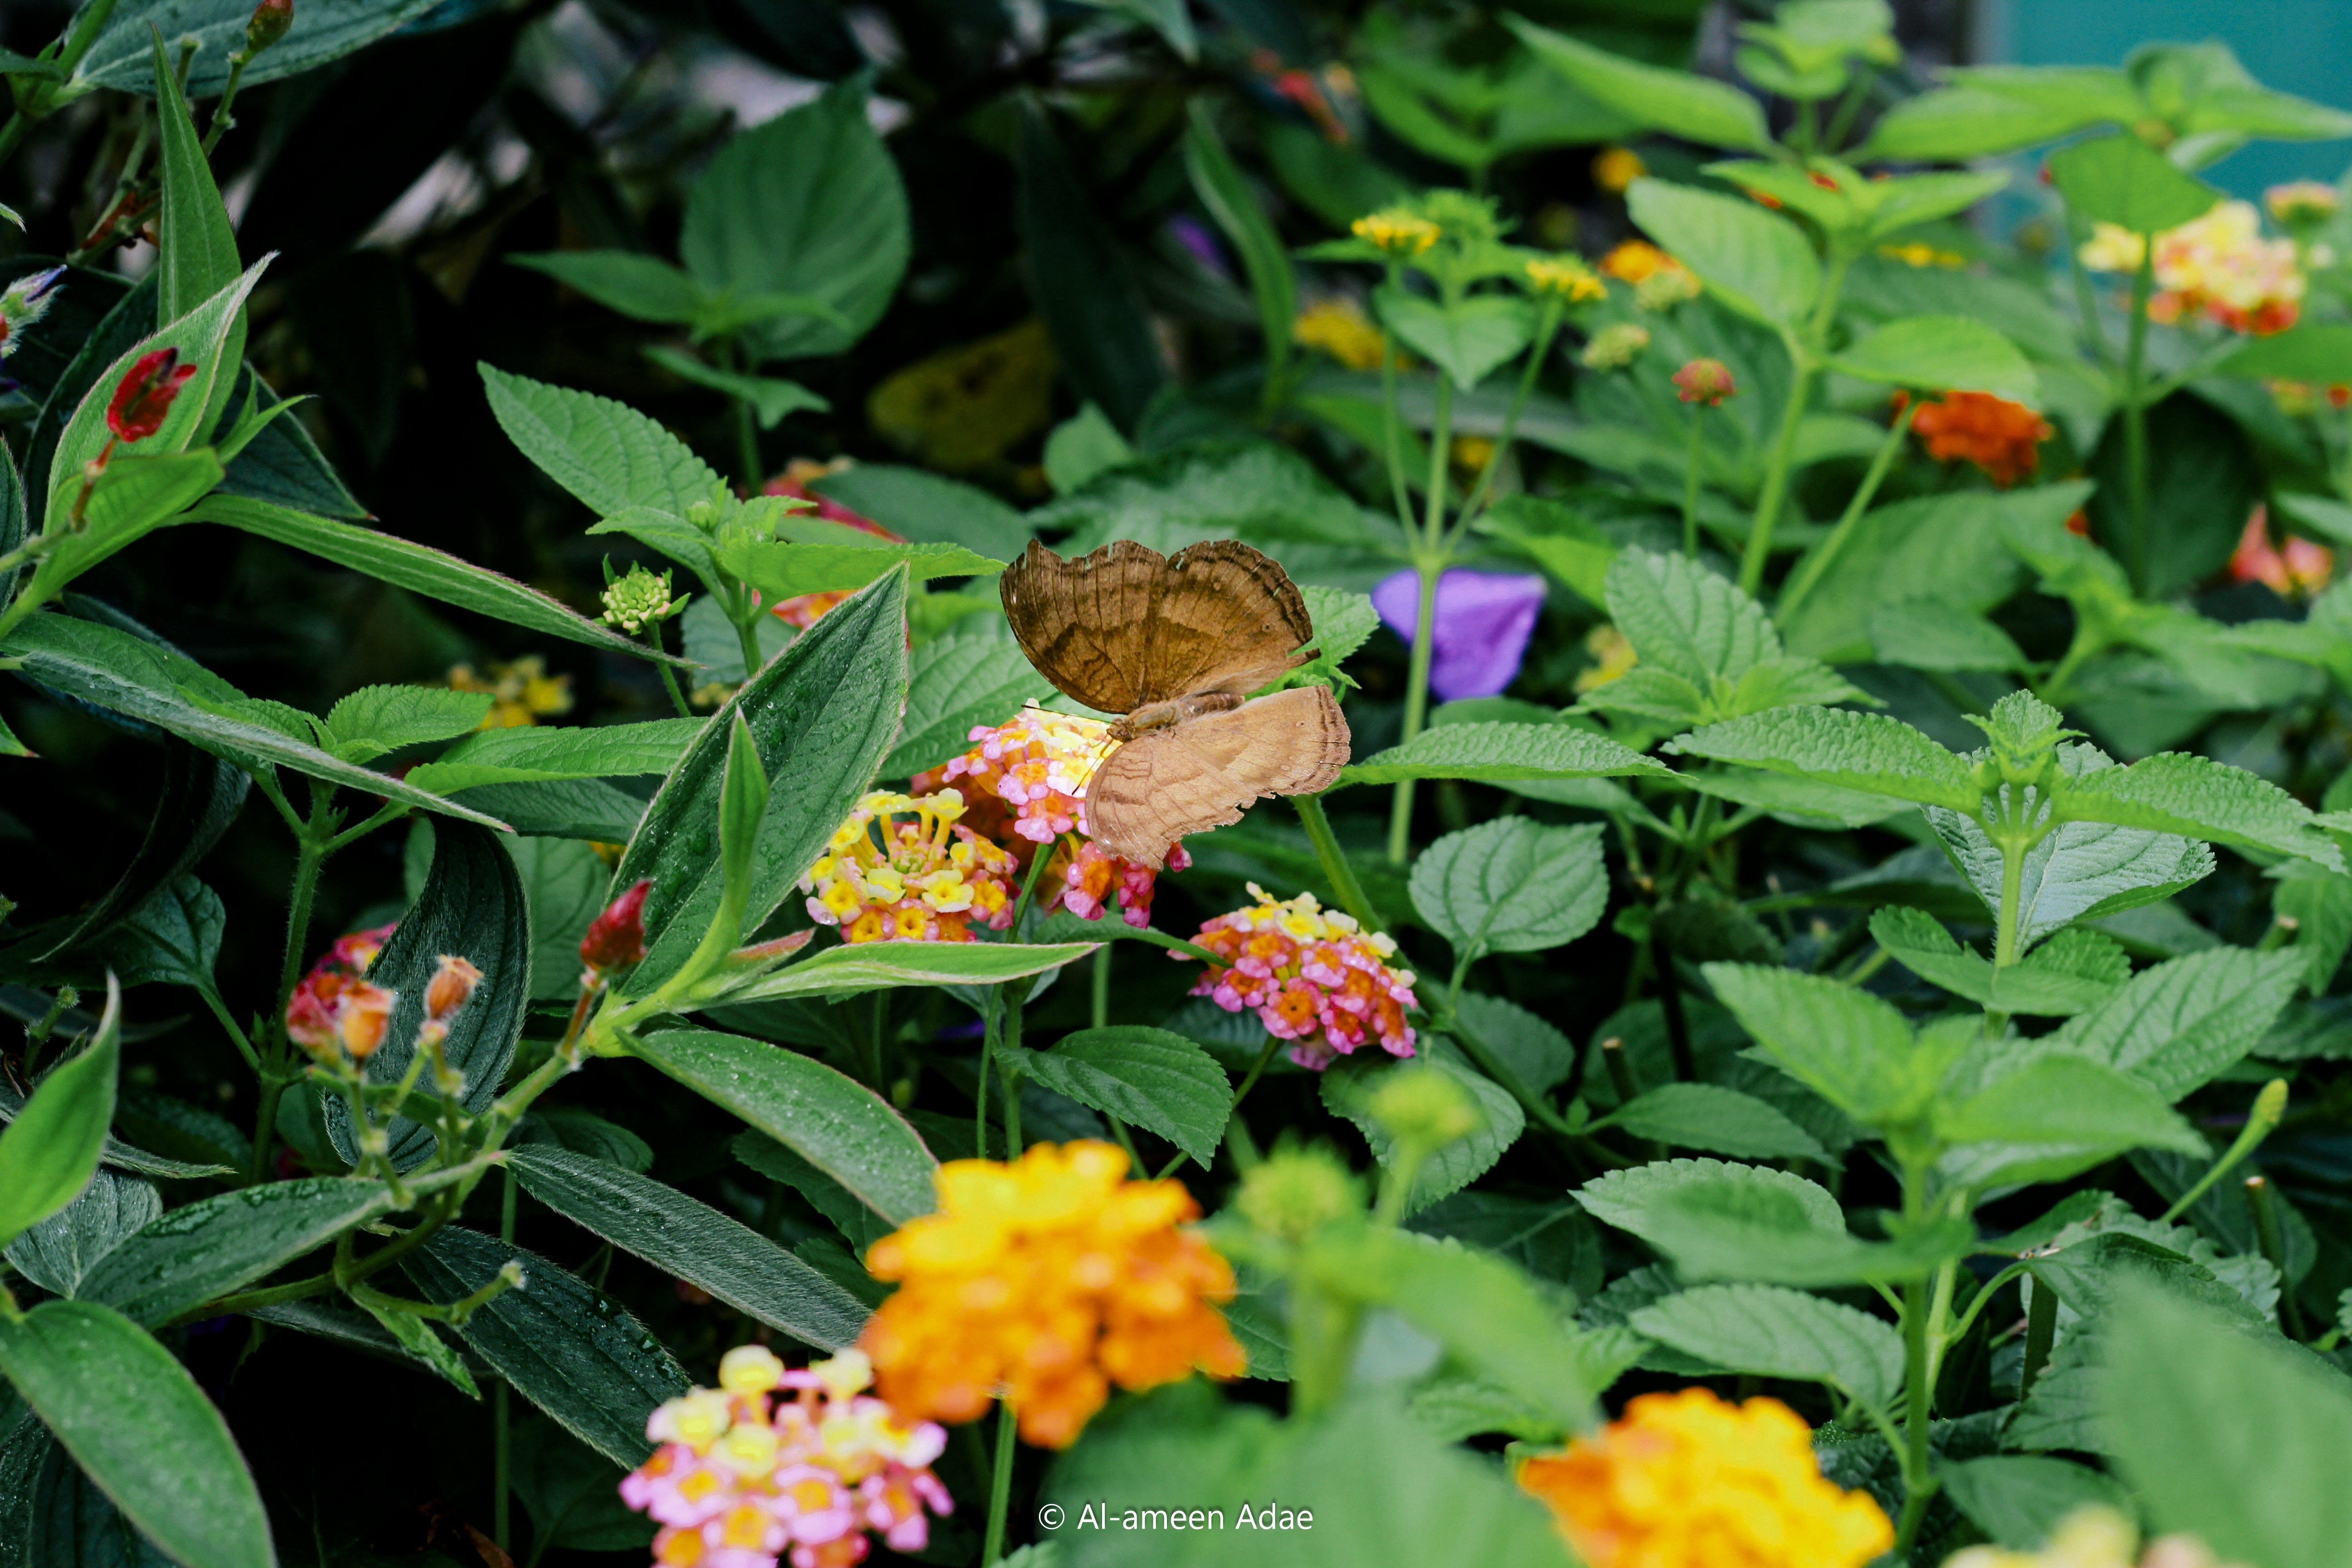 Free stock photo of artificial flowers, beautiful flowers, butterfly on a flower